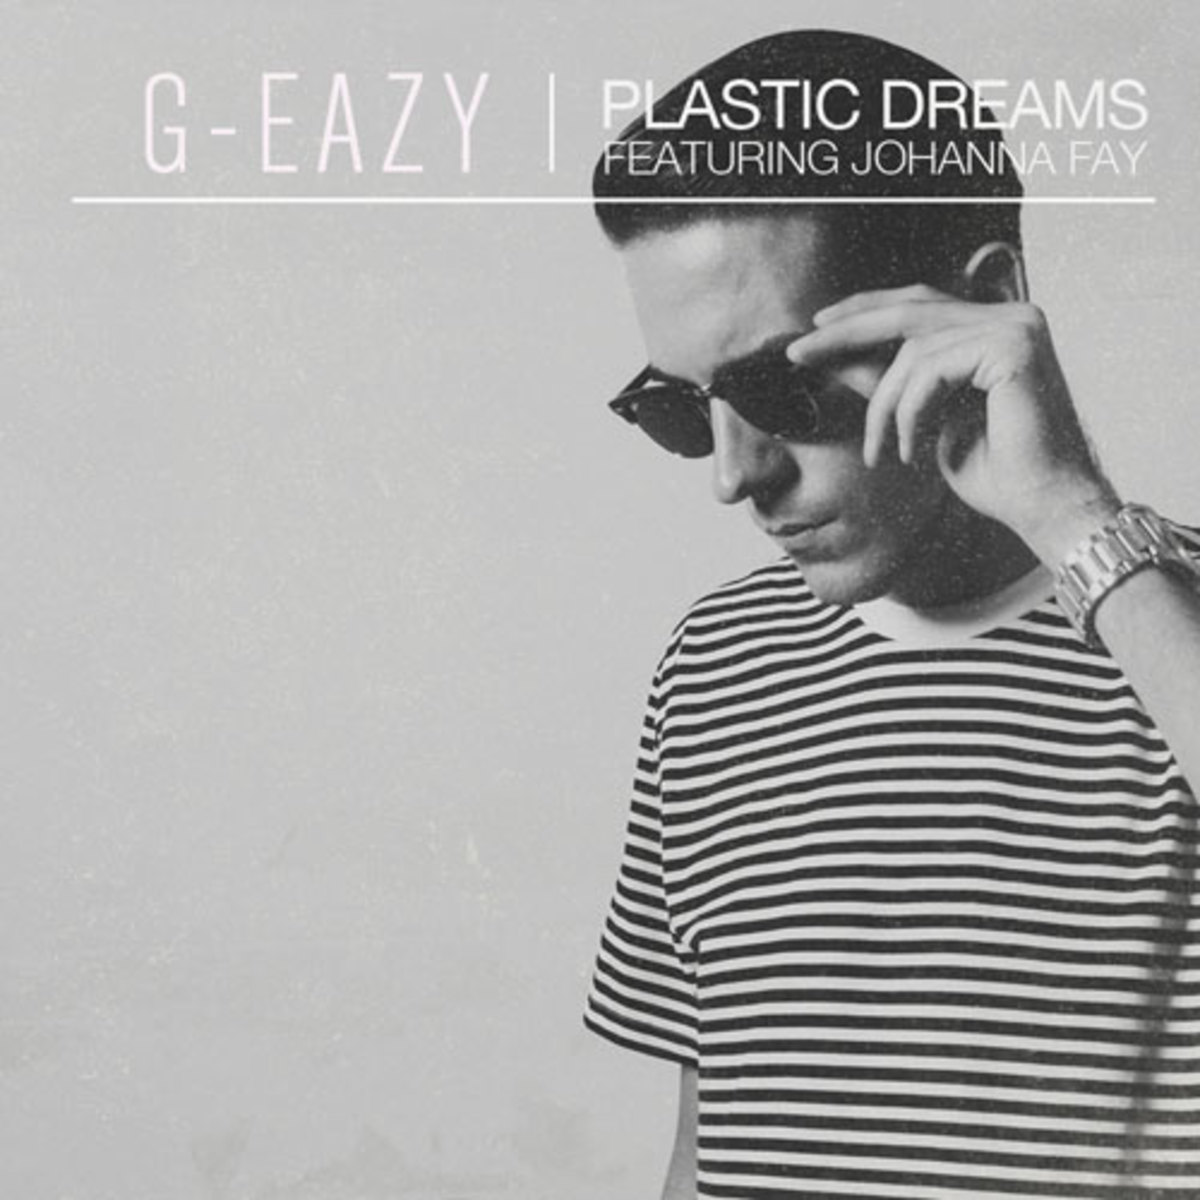 geazy-plasticdreams.jpg